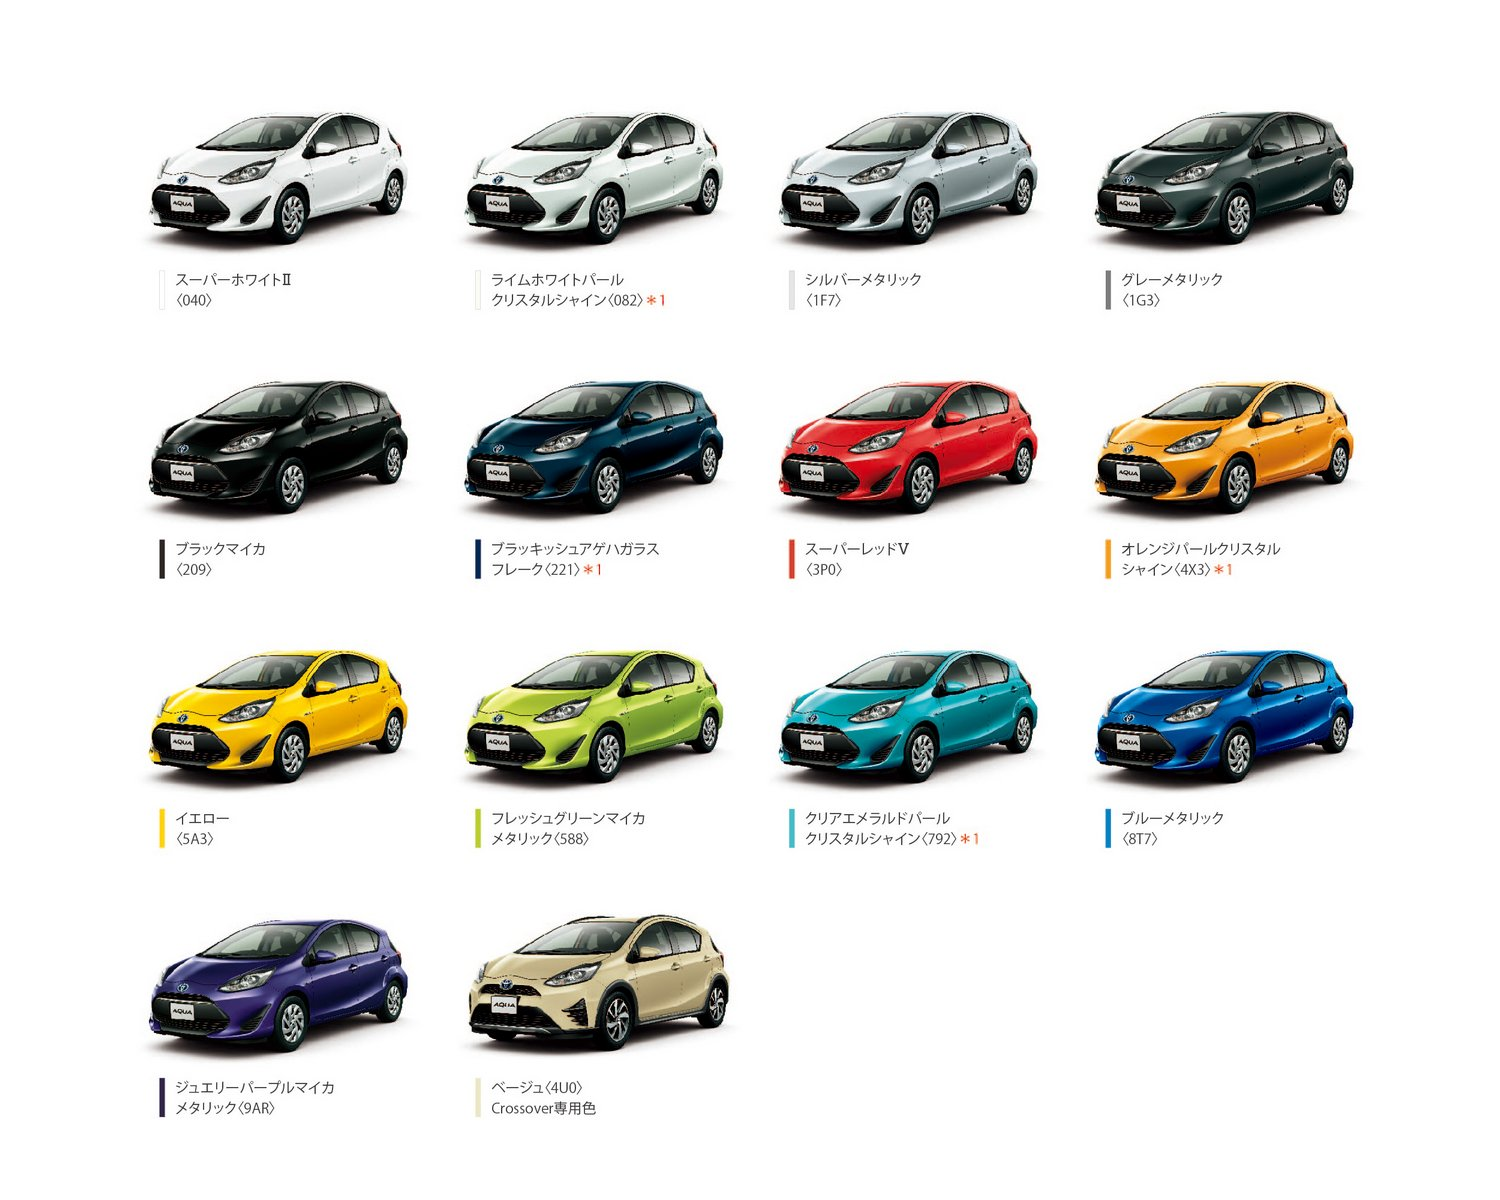 Toyota Aqua And Prius Back To Being The Most Popular Cars